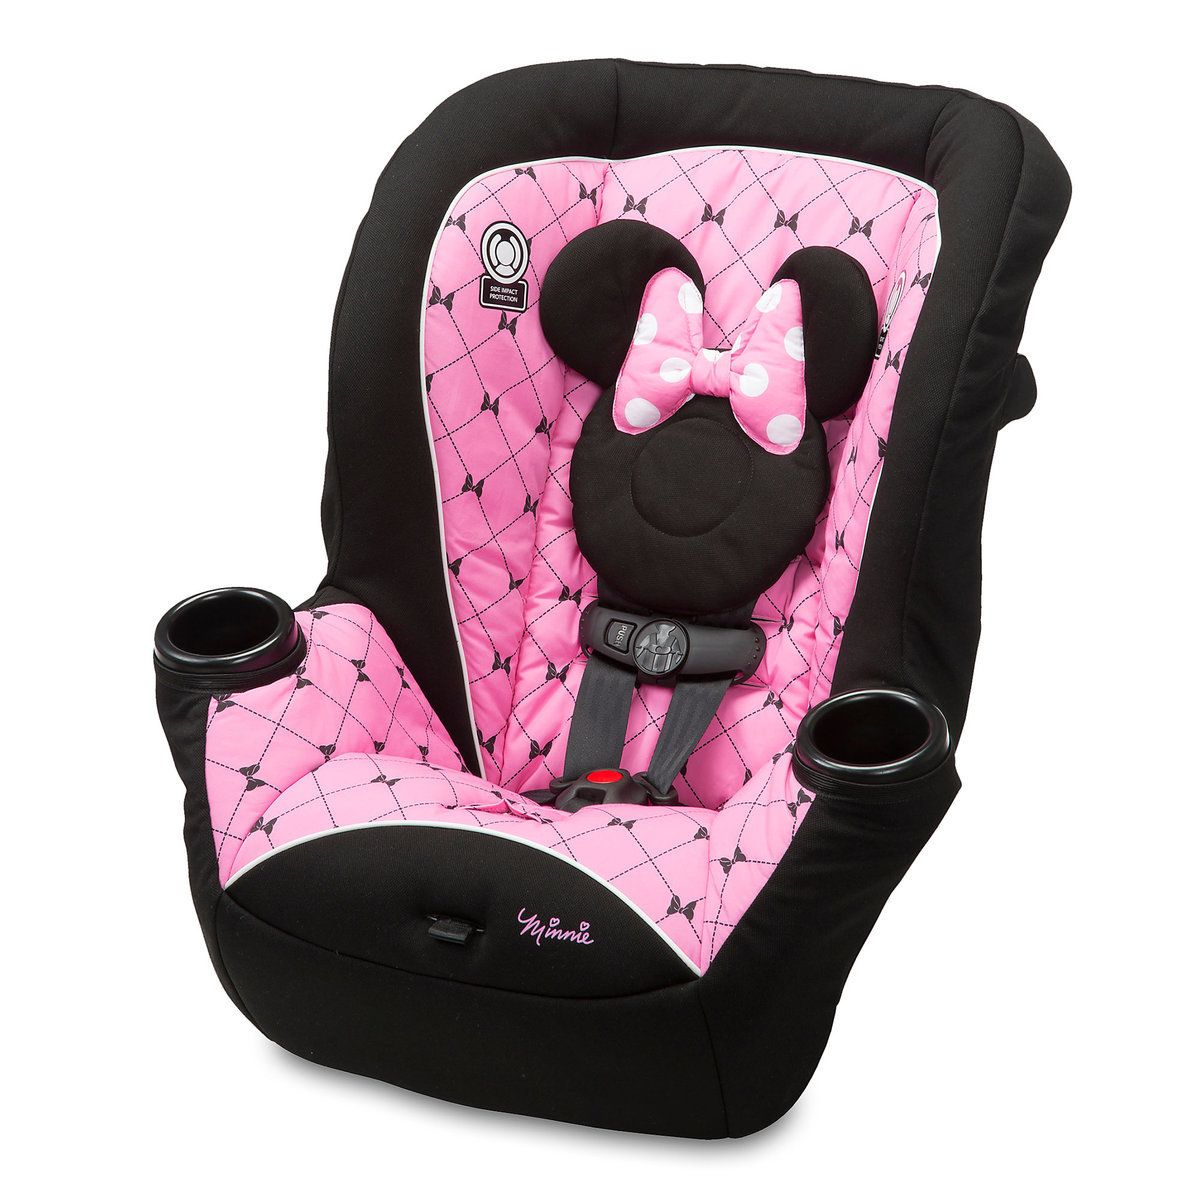 Minnie Mouse Convertible Car Seat Best Convertible Car Seat